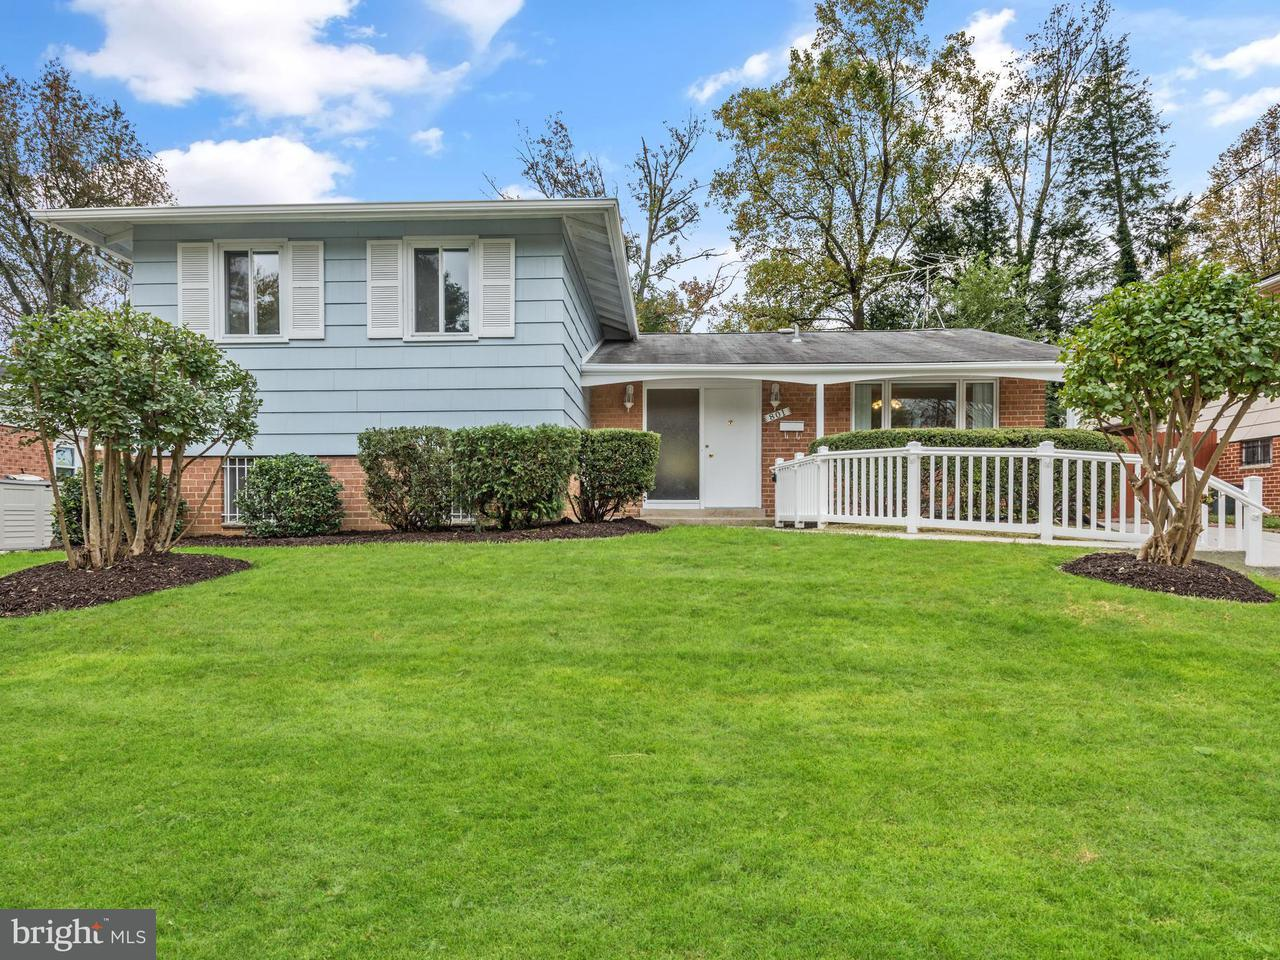 Single Family Home for Sale at 801 LOWANDER Lane 801 LOWANDER Lane Silver Spring, Maryland 20901 United States